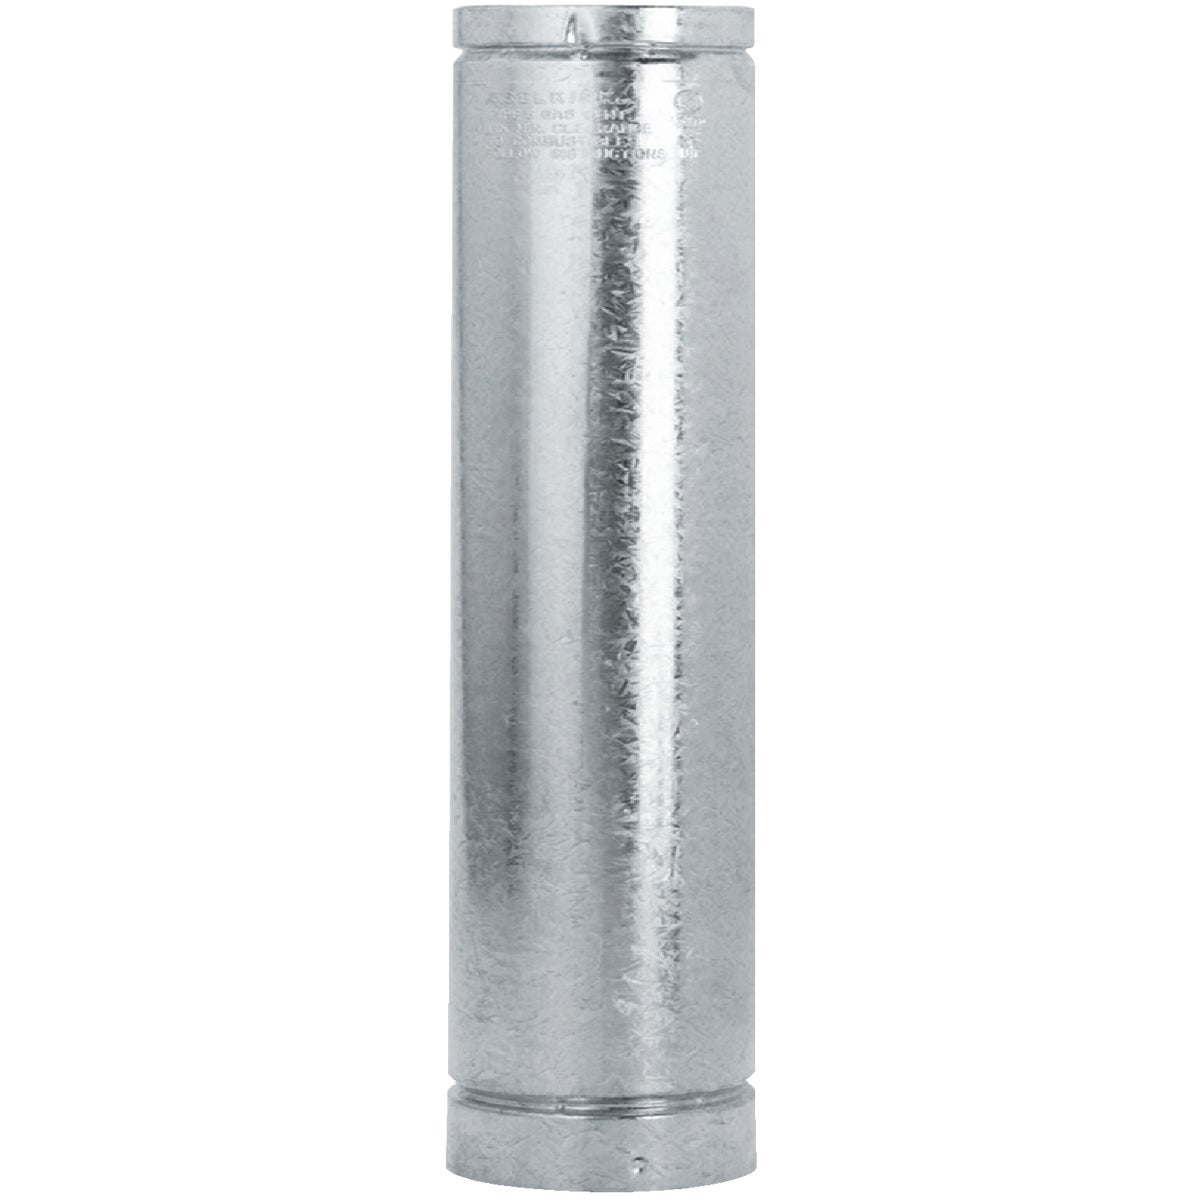 3X24 PLT STOVE PIPE - 3VP-24 by Selkirk Corporation